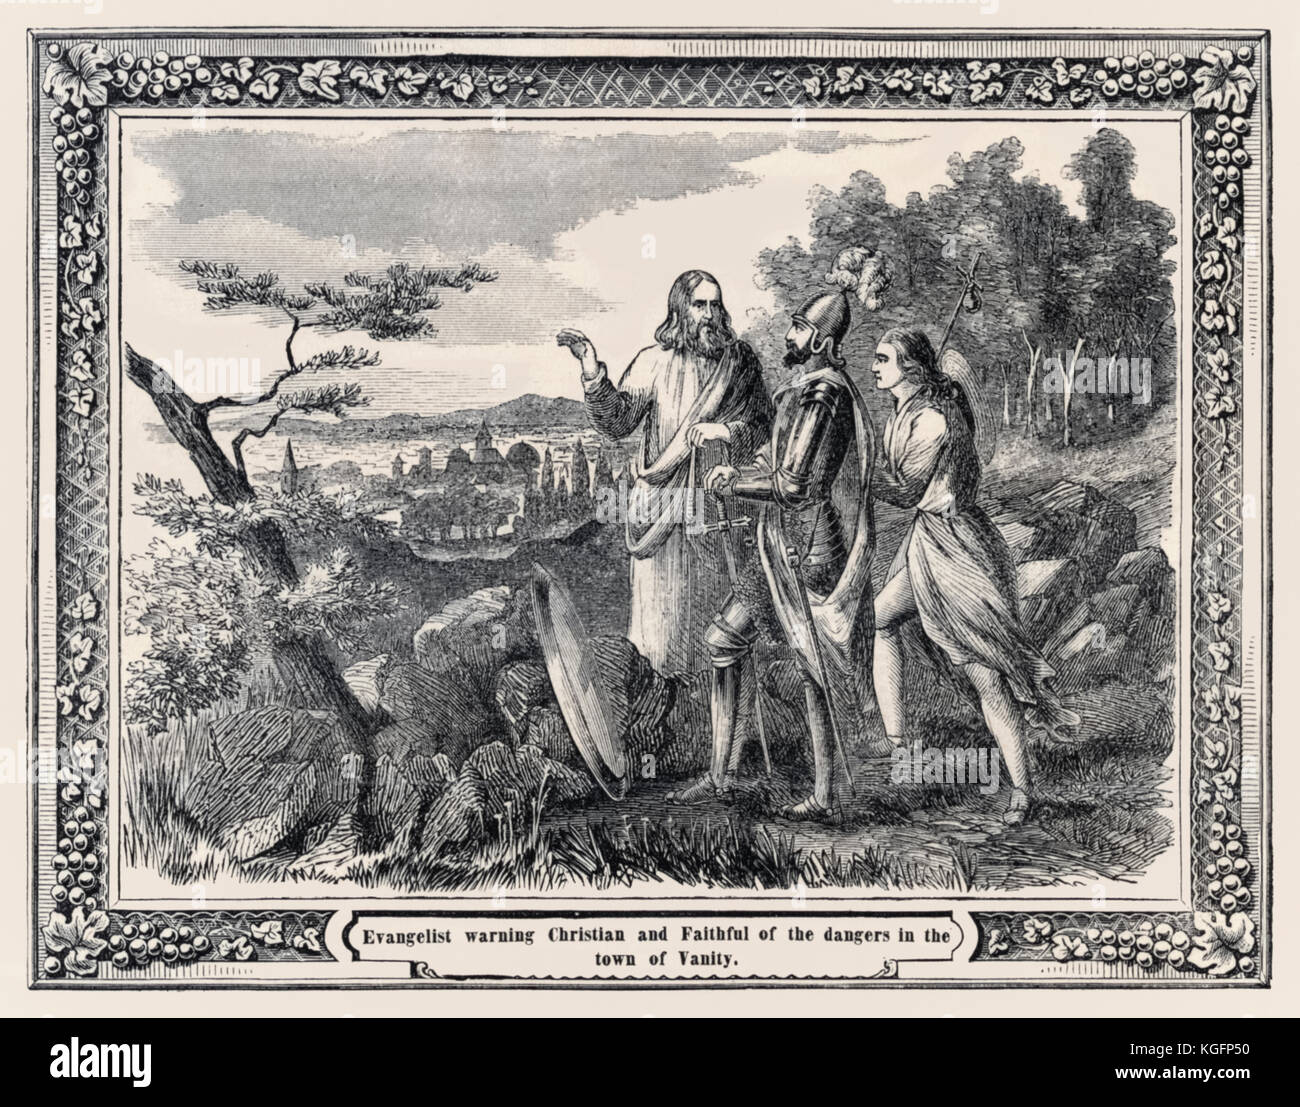 'Evangelist warning Christian and Faithful of the dangers in the town of Vanity' from the 'Pictorial Pilgrim's - Stock Image